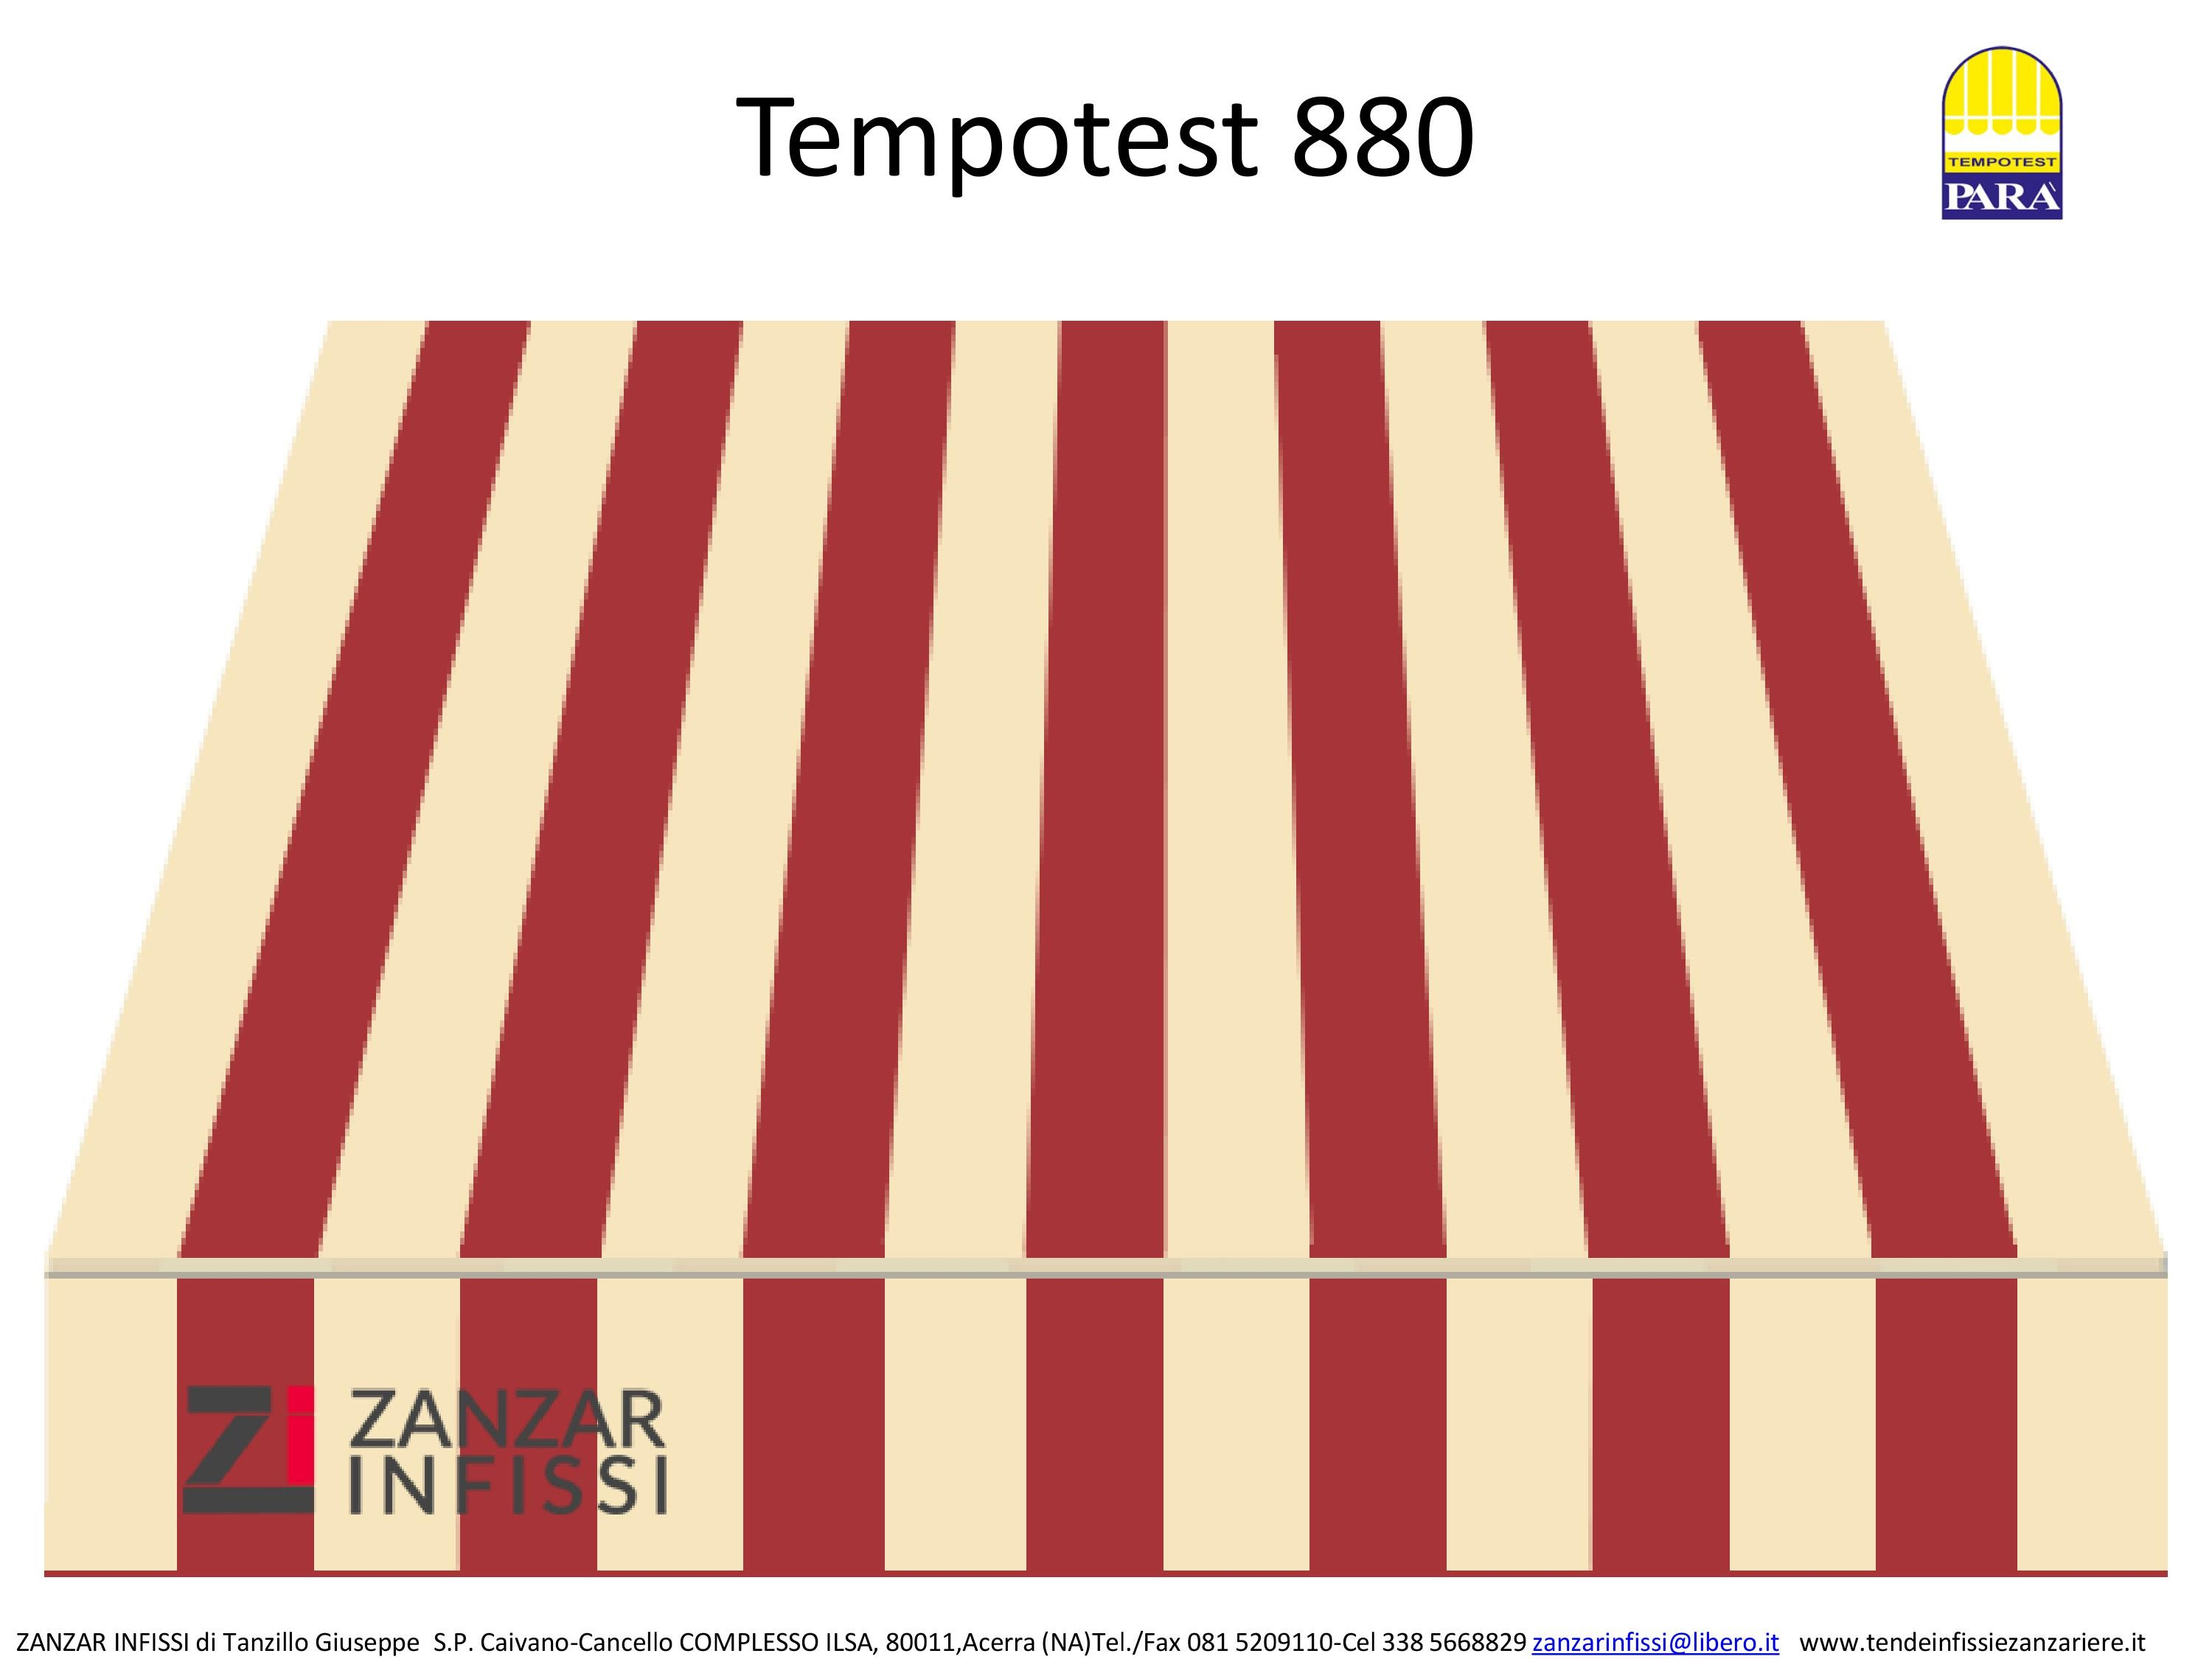 Tempotest 880